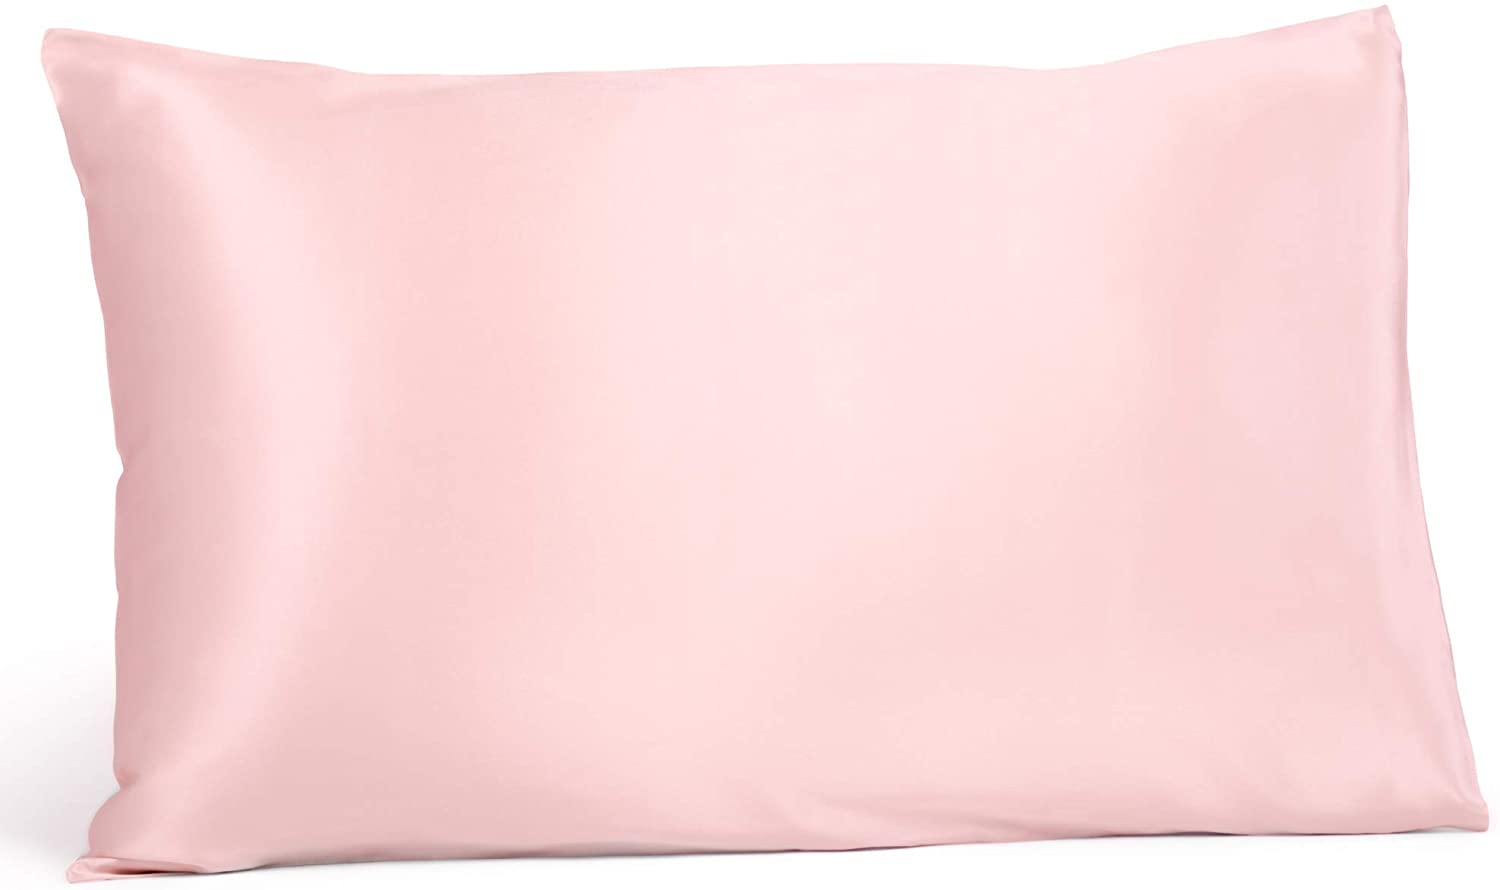 Melburry Silk Pillowcase - WorkwearToronto.com - Best Christmas Gifts for Woman - 2020